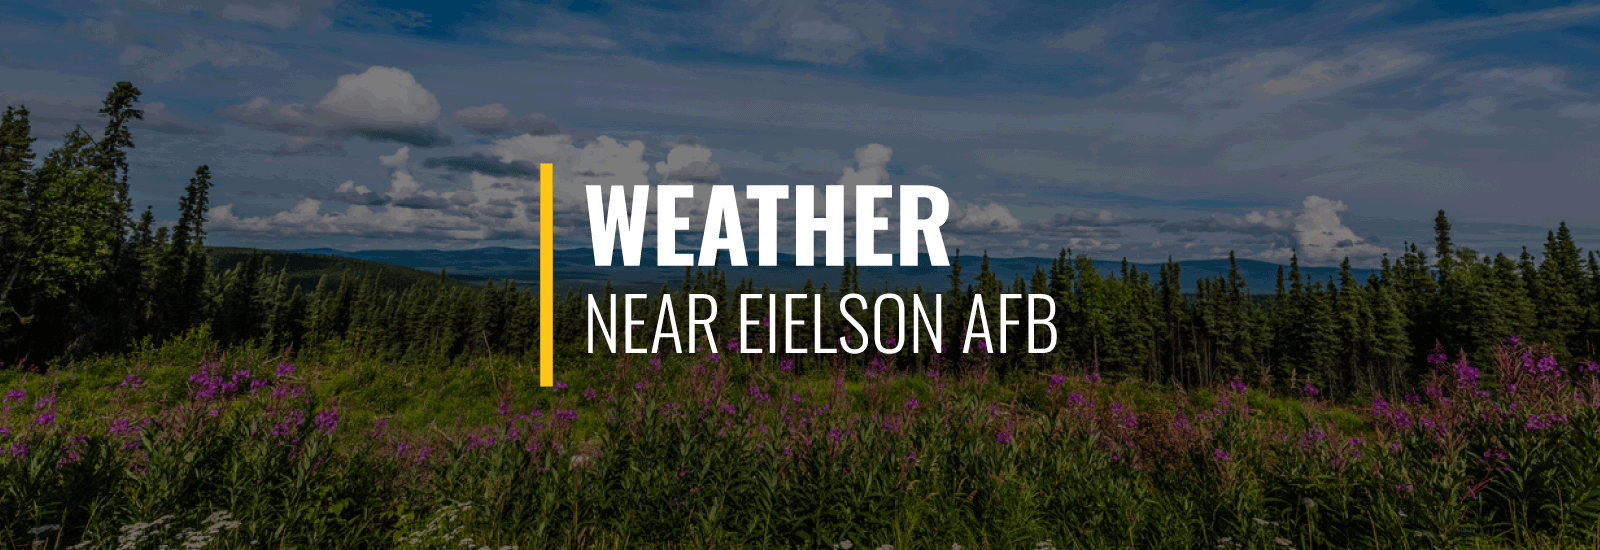 Eielson AFB Weather